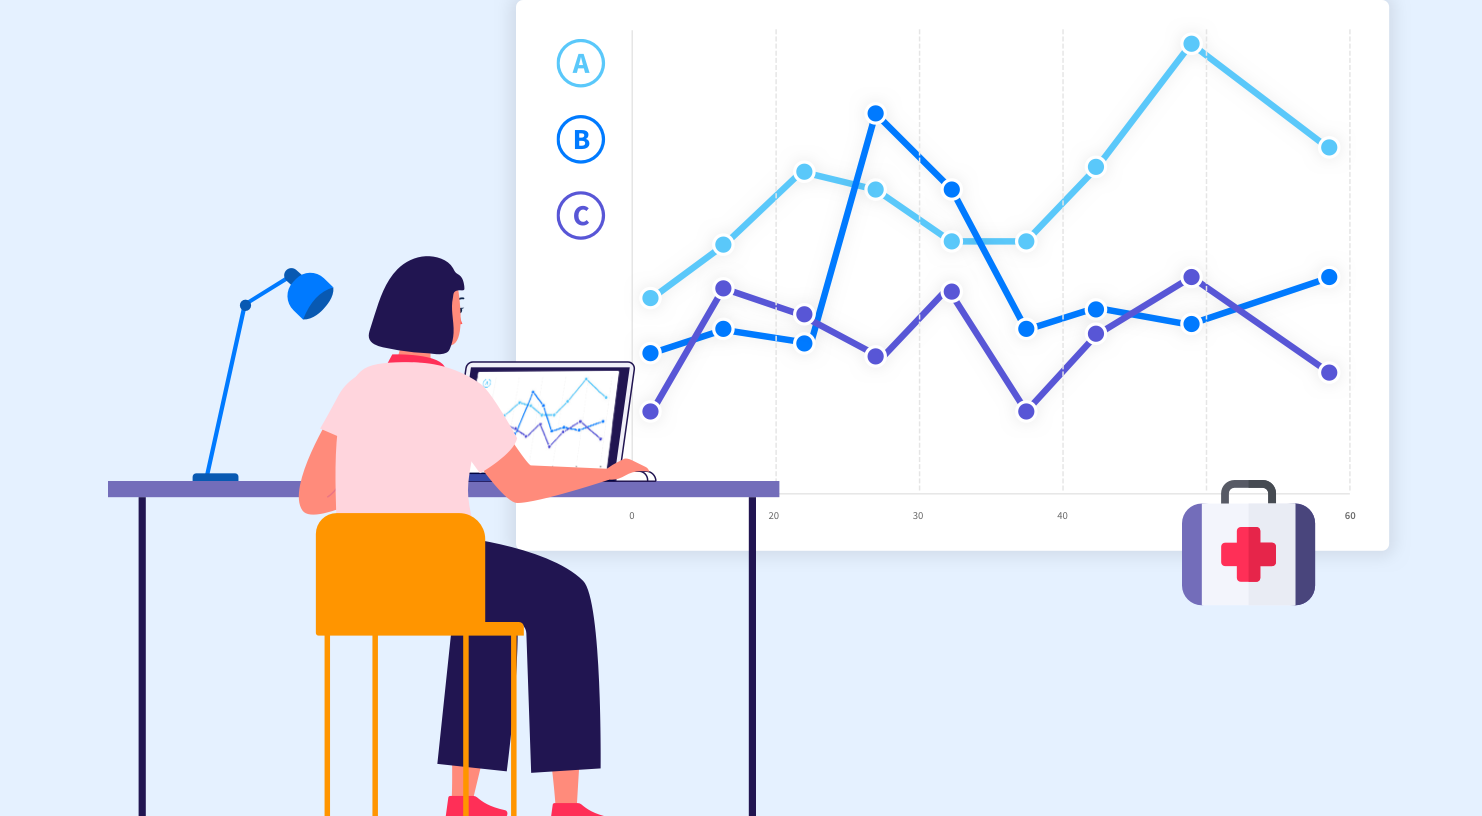 Woman sits at desk behind her is a large graph displaying results from a brand health tracking study.